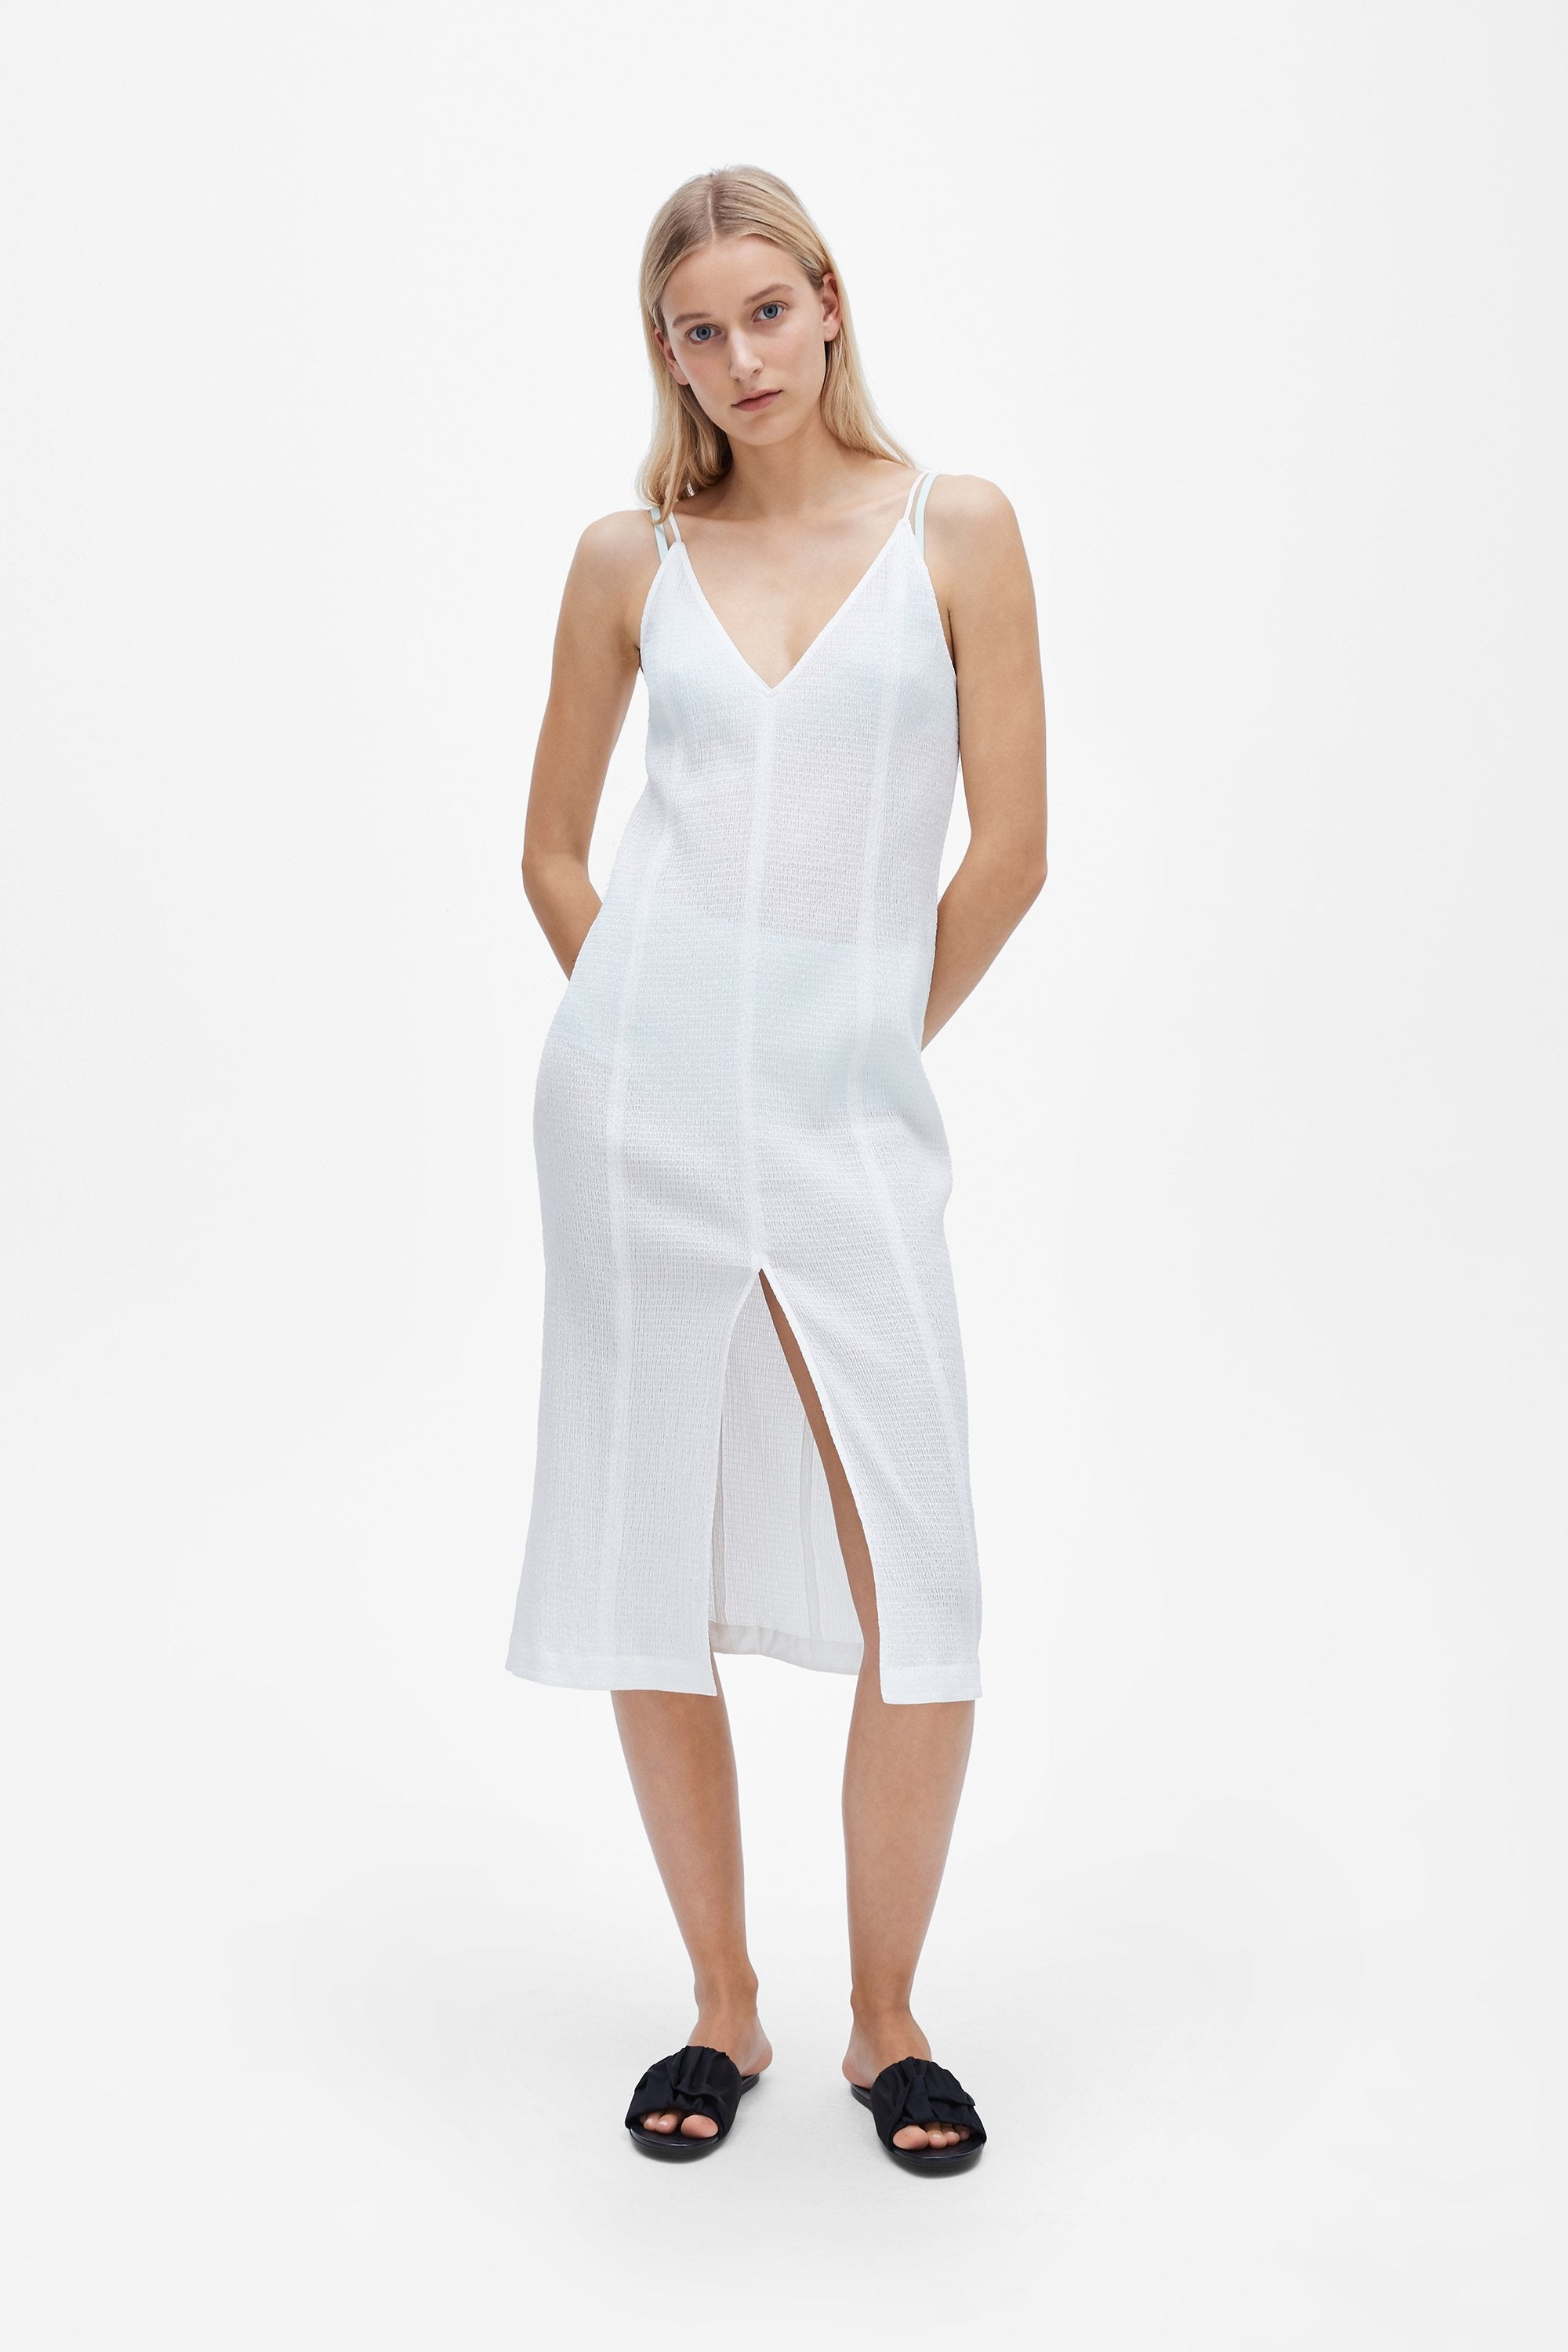 Split slip dress - Shirred voile - White - Resortwear dress - Her Line